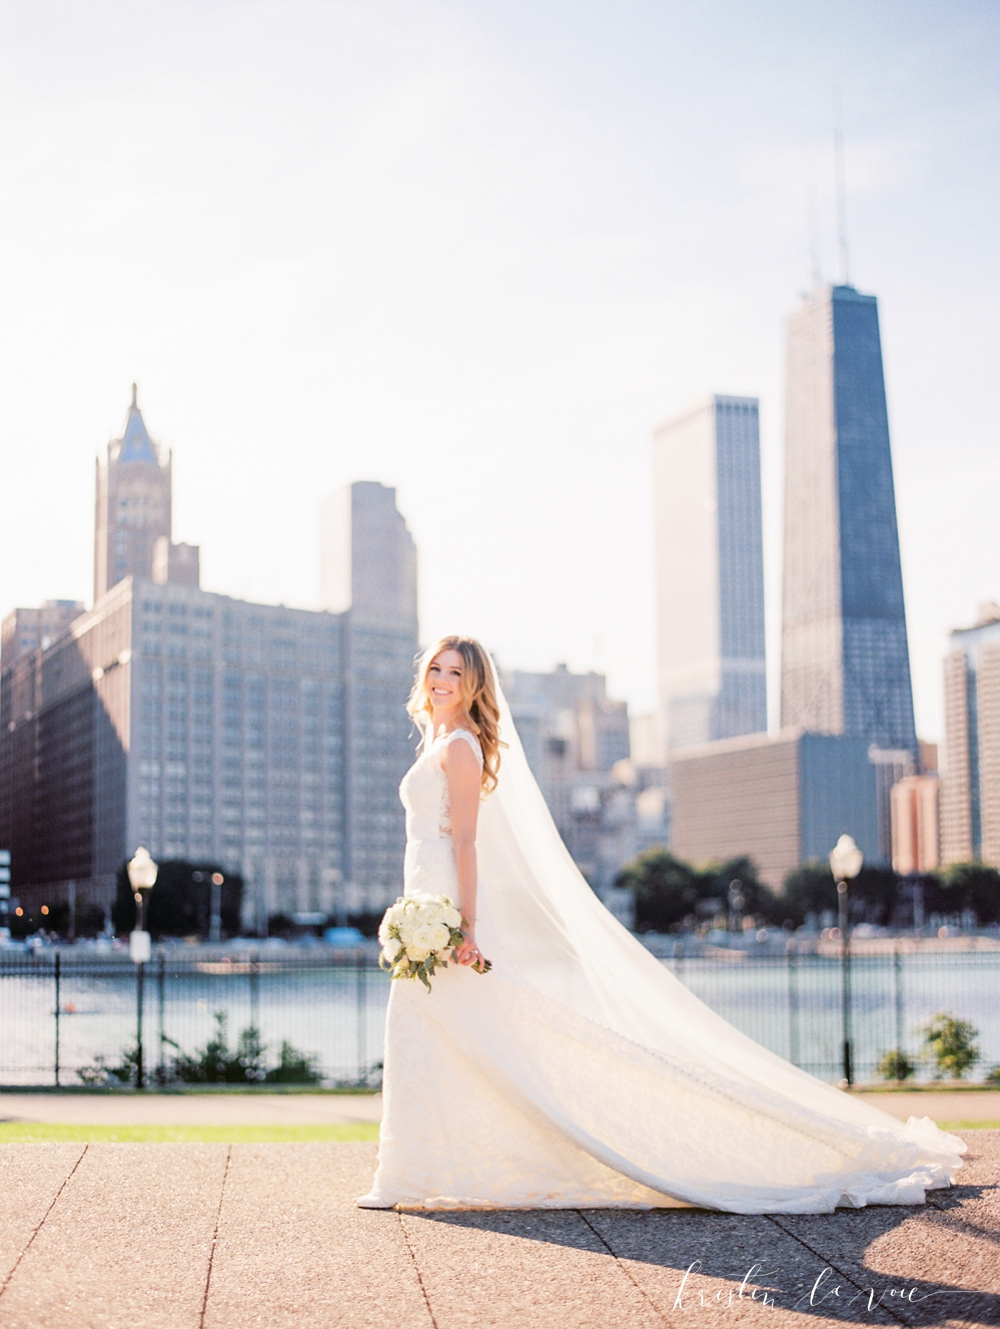 Lauren + Brendan | Chicago wedding | Liancarlo 5802 from Little White Dress Bridal Shop in Denver | Kristin La Voie photography